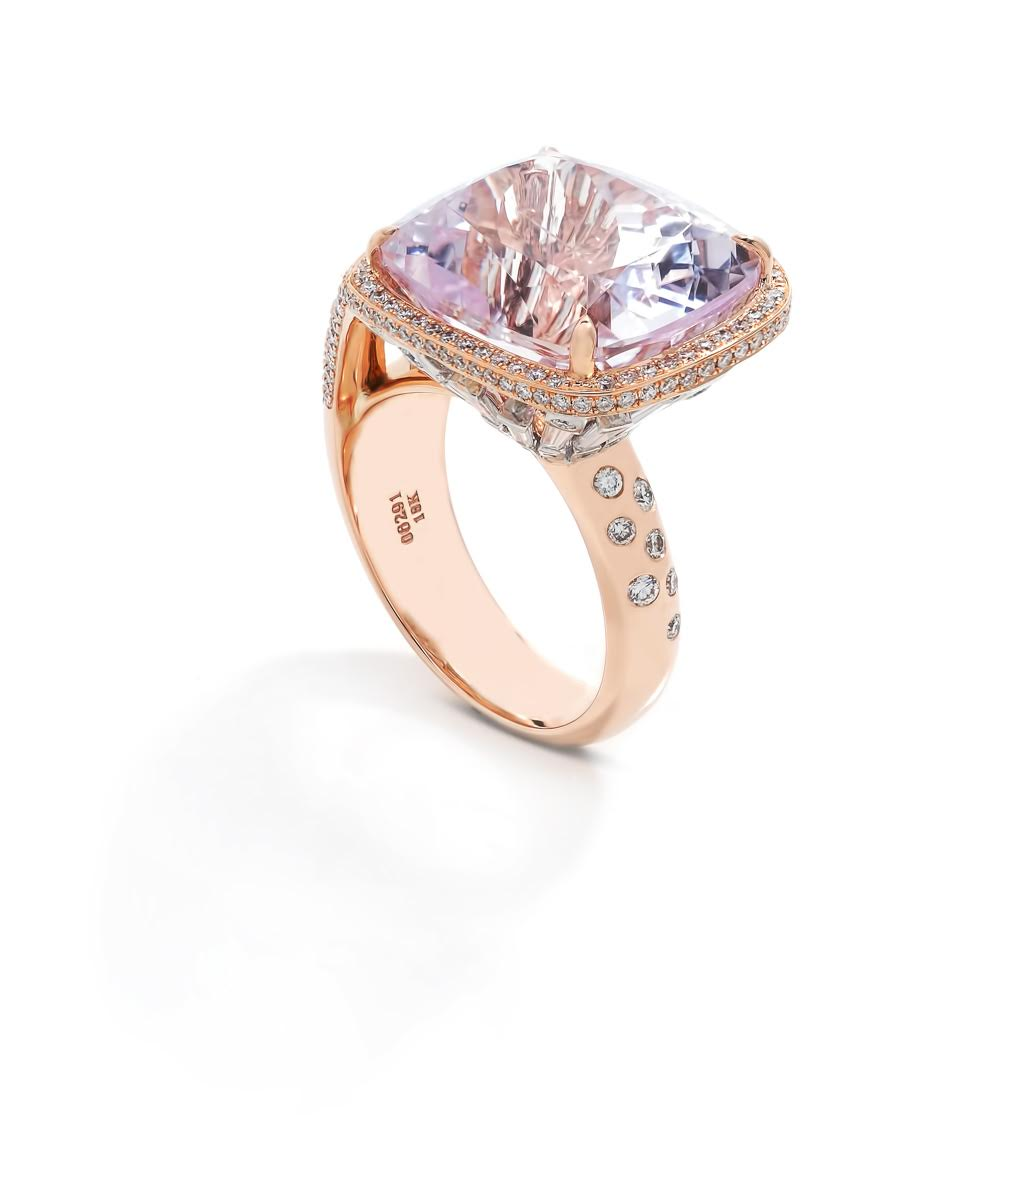 Trinity ring in 18k rose gold with a cushion-cut kunzite and diamonds.